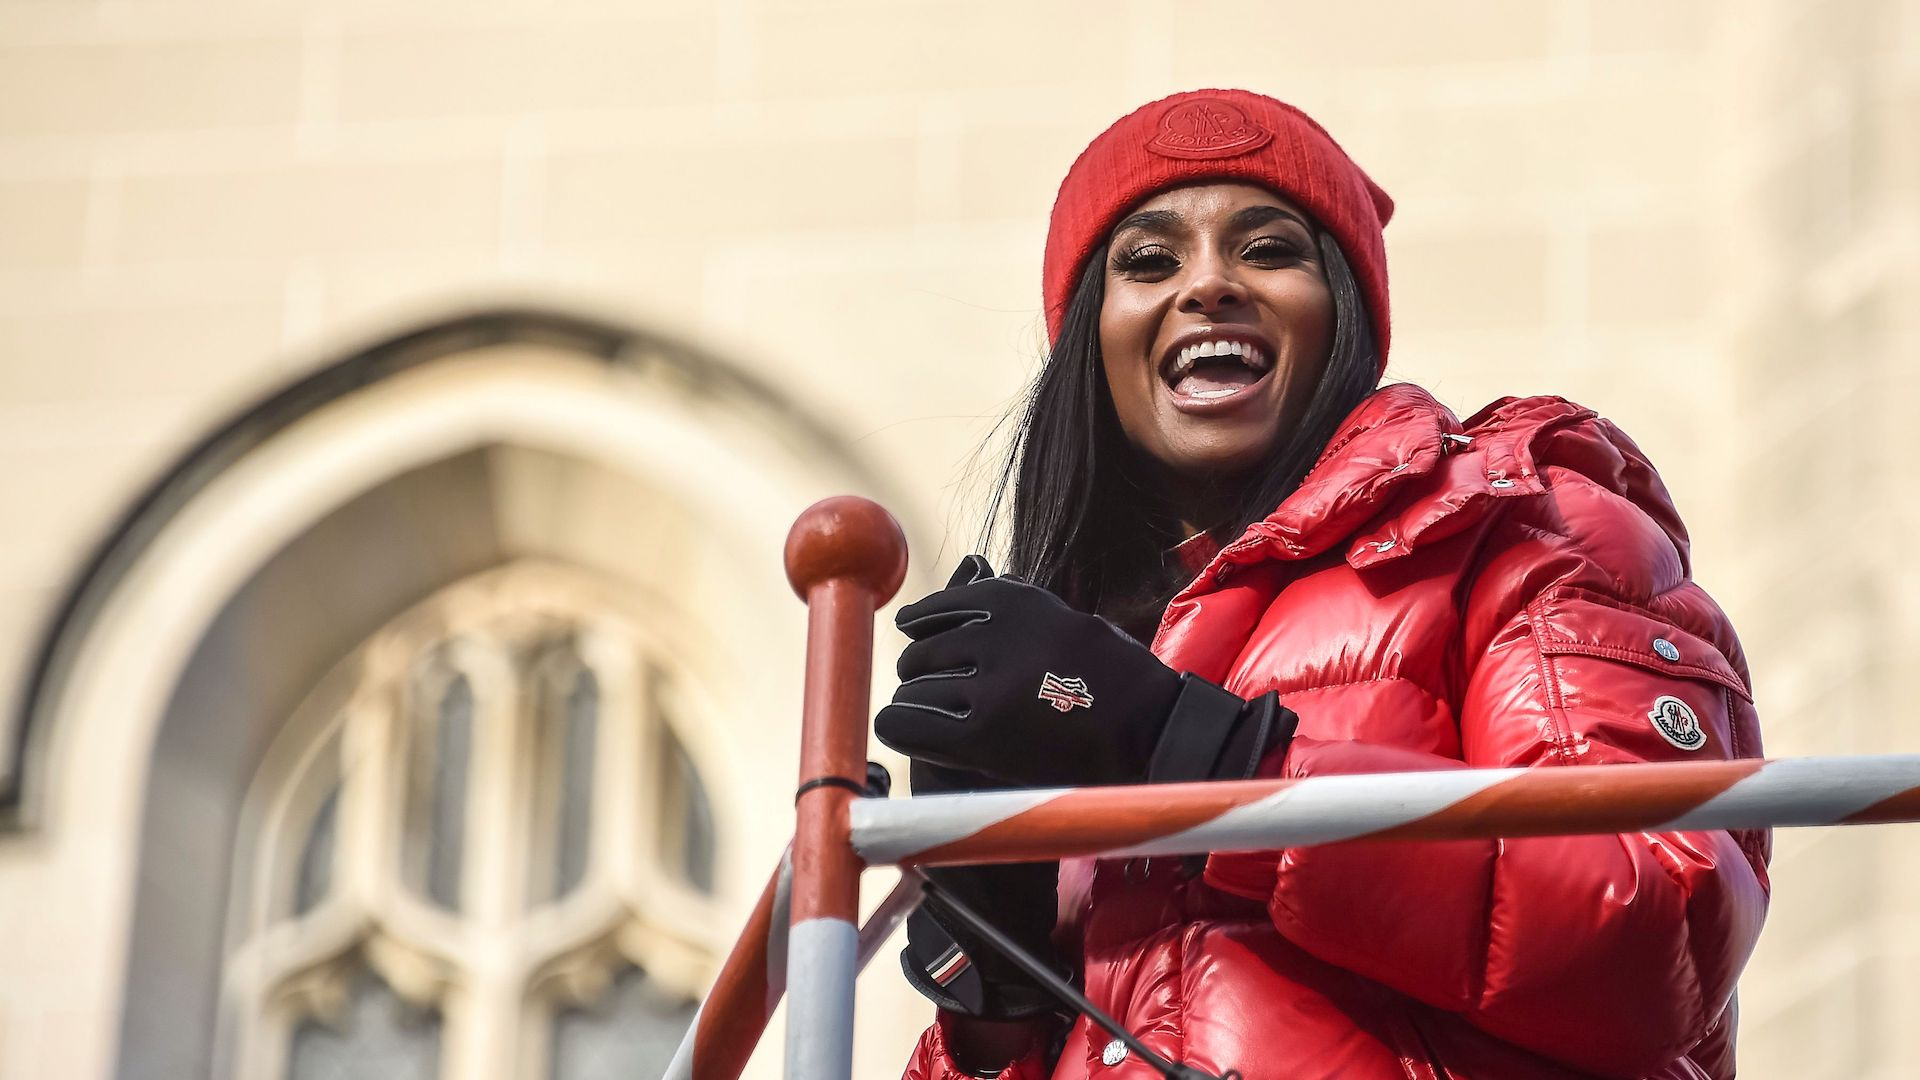 Ciara's Thanksgiving Parade All-Puffer Outfit Is a *Major* Winter Mood